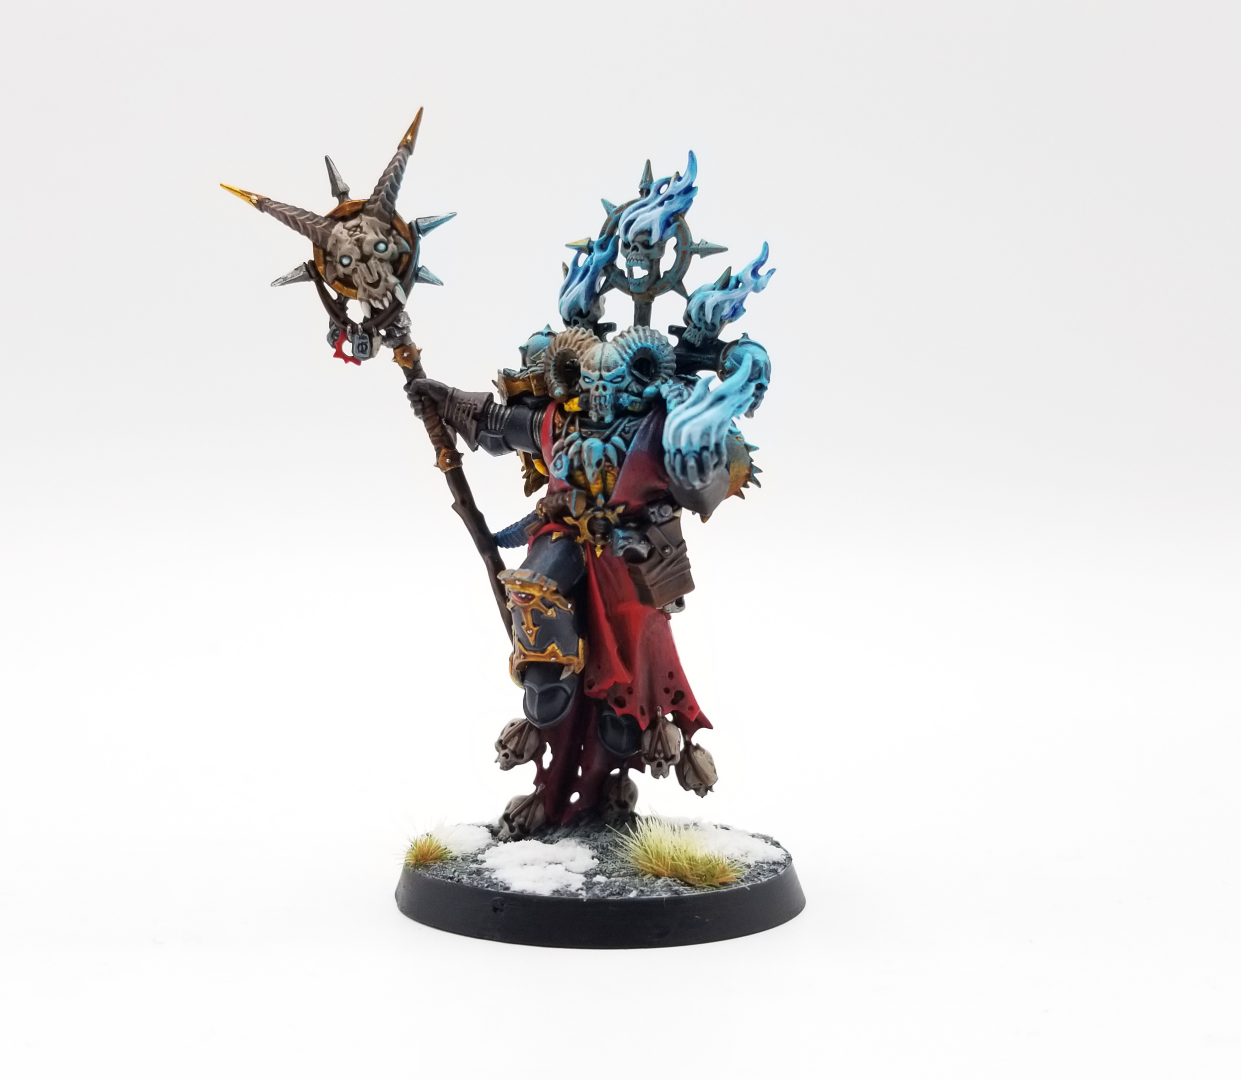 Goonhammer Hobby Round-up: April 2021 (end of month)